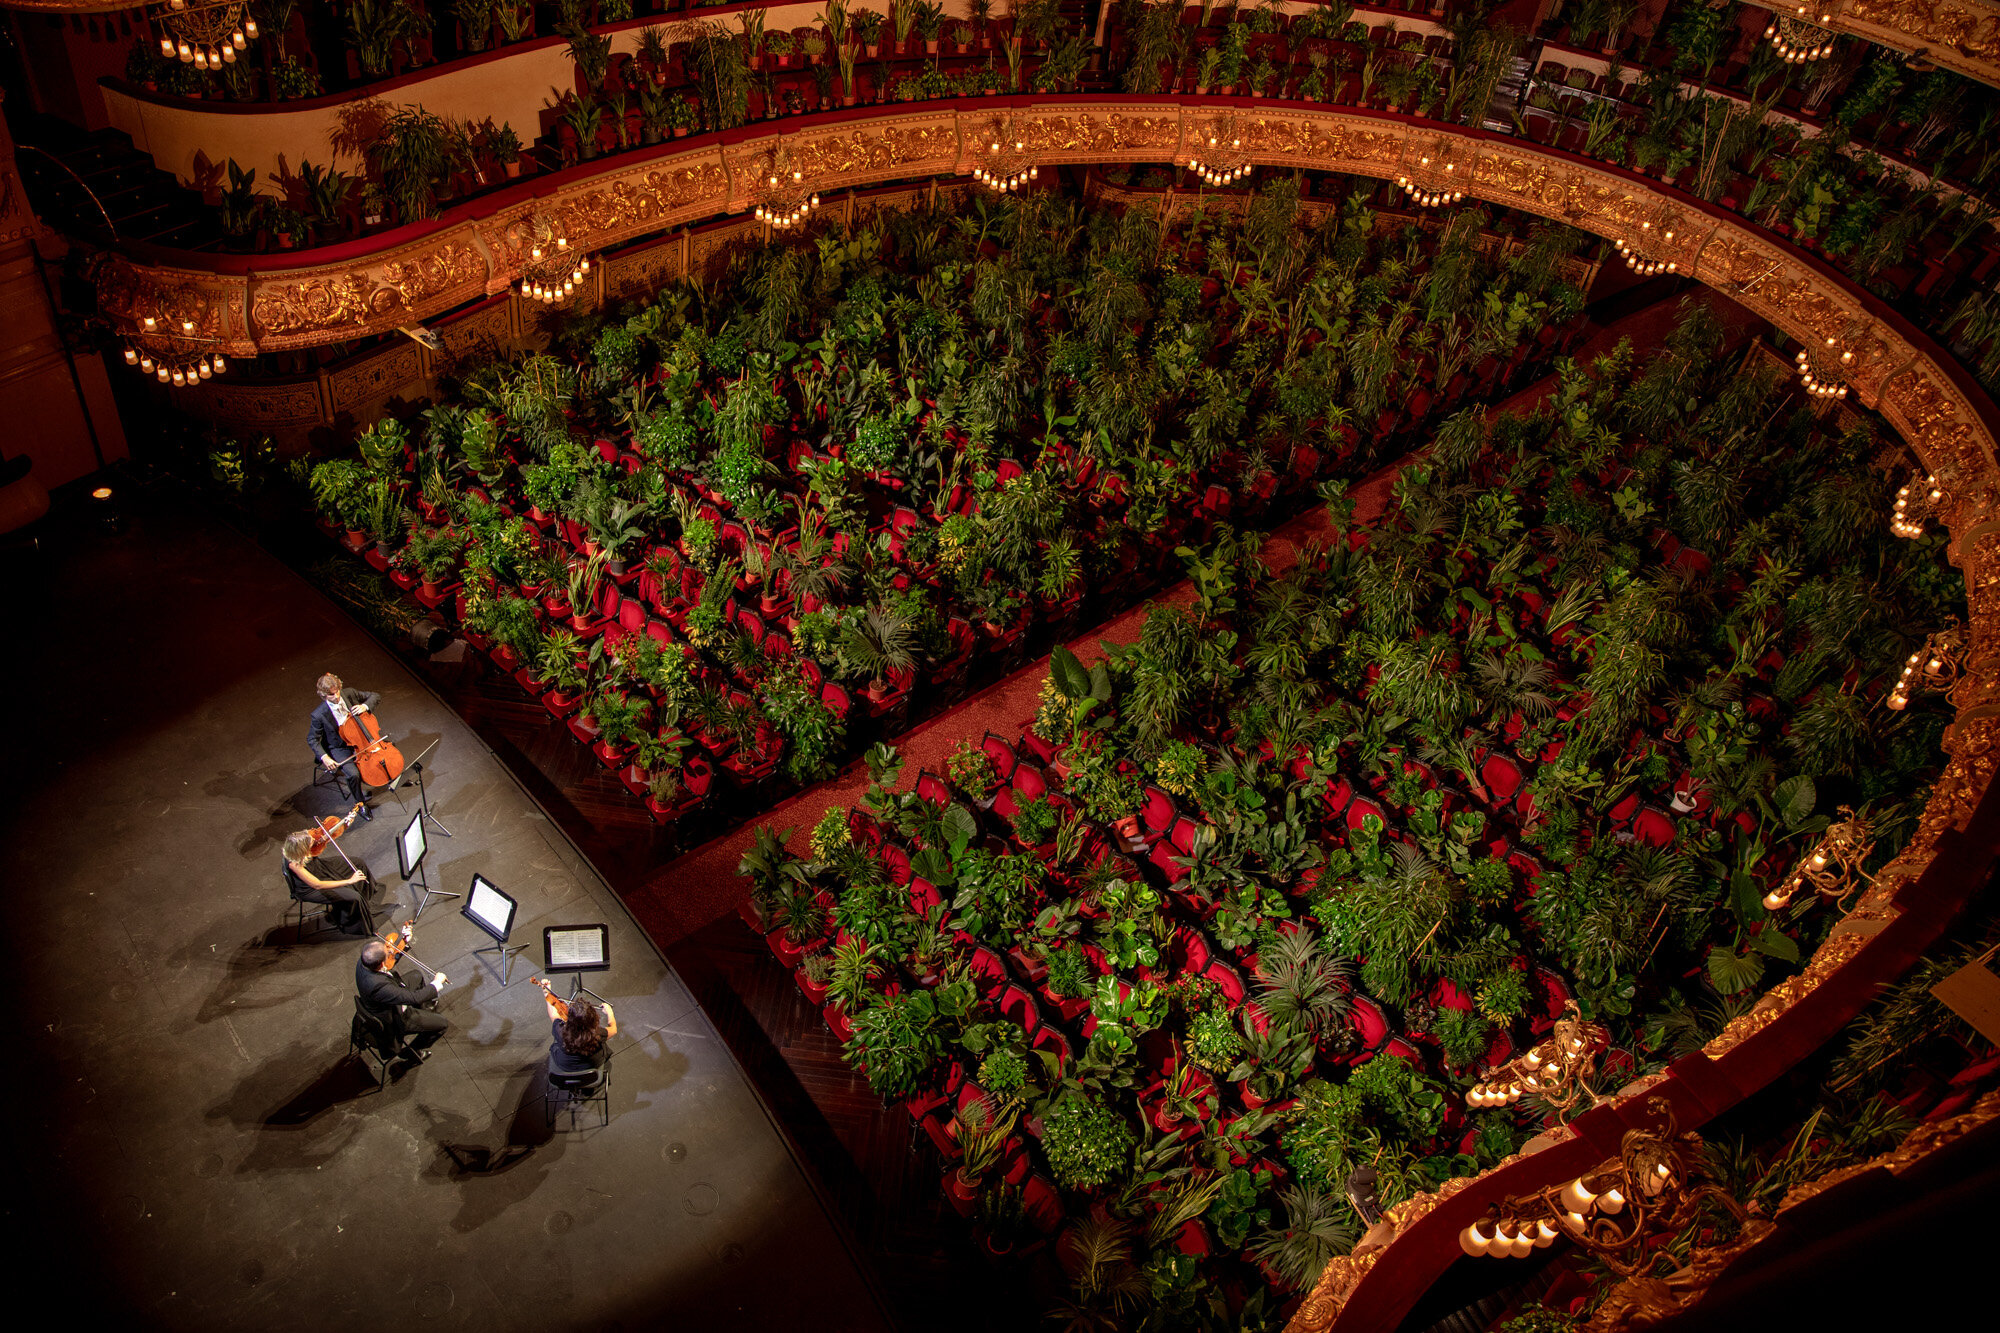 """Musicians rehears at the Gran Teatre del Liceu in Barcelona, Spain, on June 22, 2020. When the doors opened for the performance of Puccini's """"Crisantemi"""" by the UceLi Quartet, the 2,292 seats of the auditorium were occupied by plants and the performance was broadcast live online. (AP Photo/Emilio Morenatti)"""